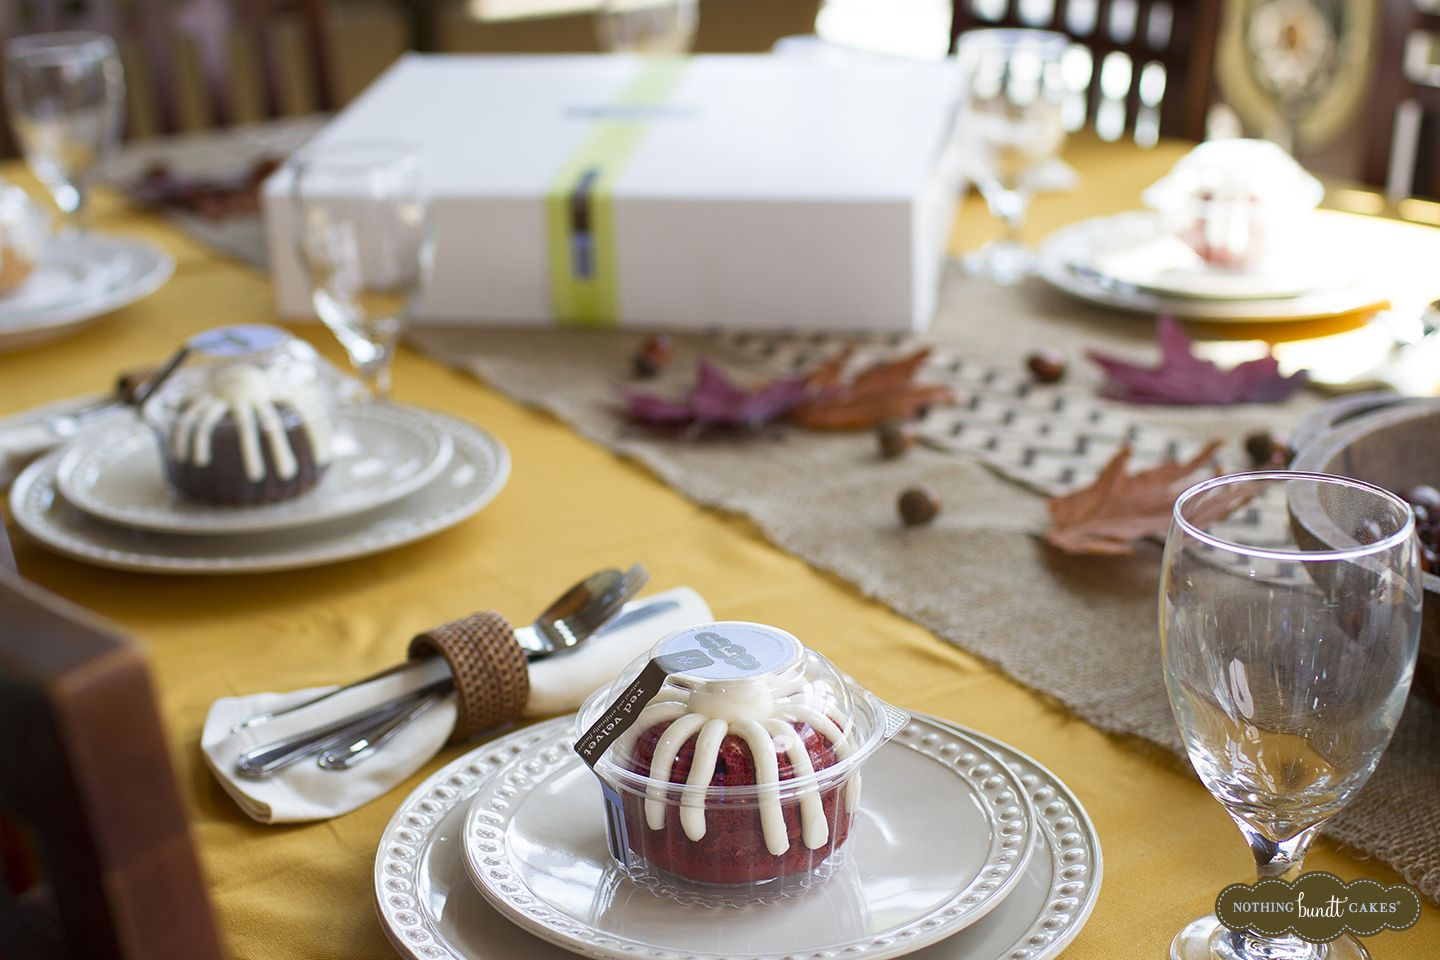 A bundtlet bundle from nothing bundt cakes allows you to